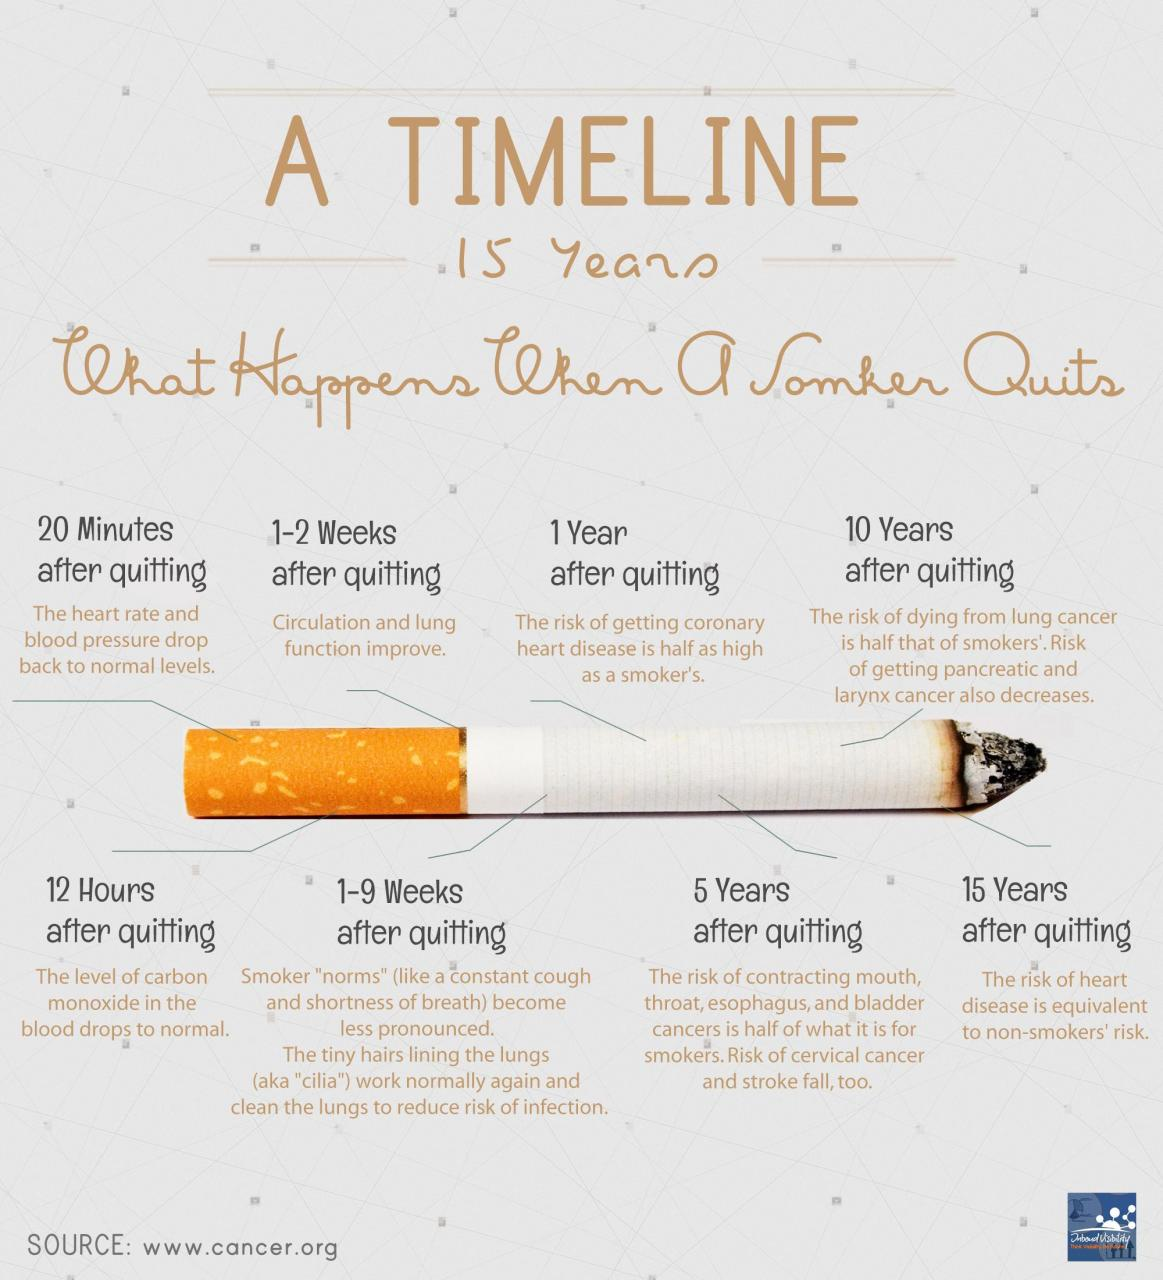 Image Im Sick Of All The Punny Ish Inspiration Quotes Here So Heres Some Real Motivation To Get People To Stop Smoking